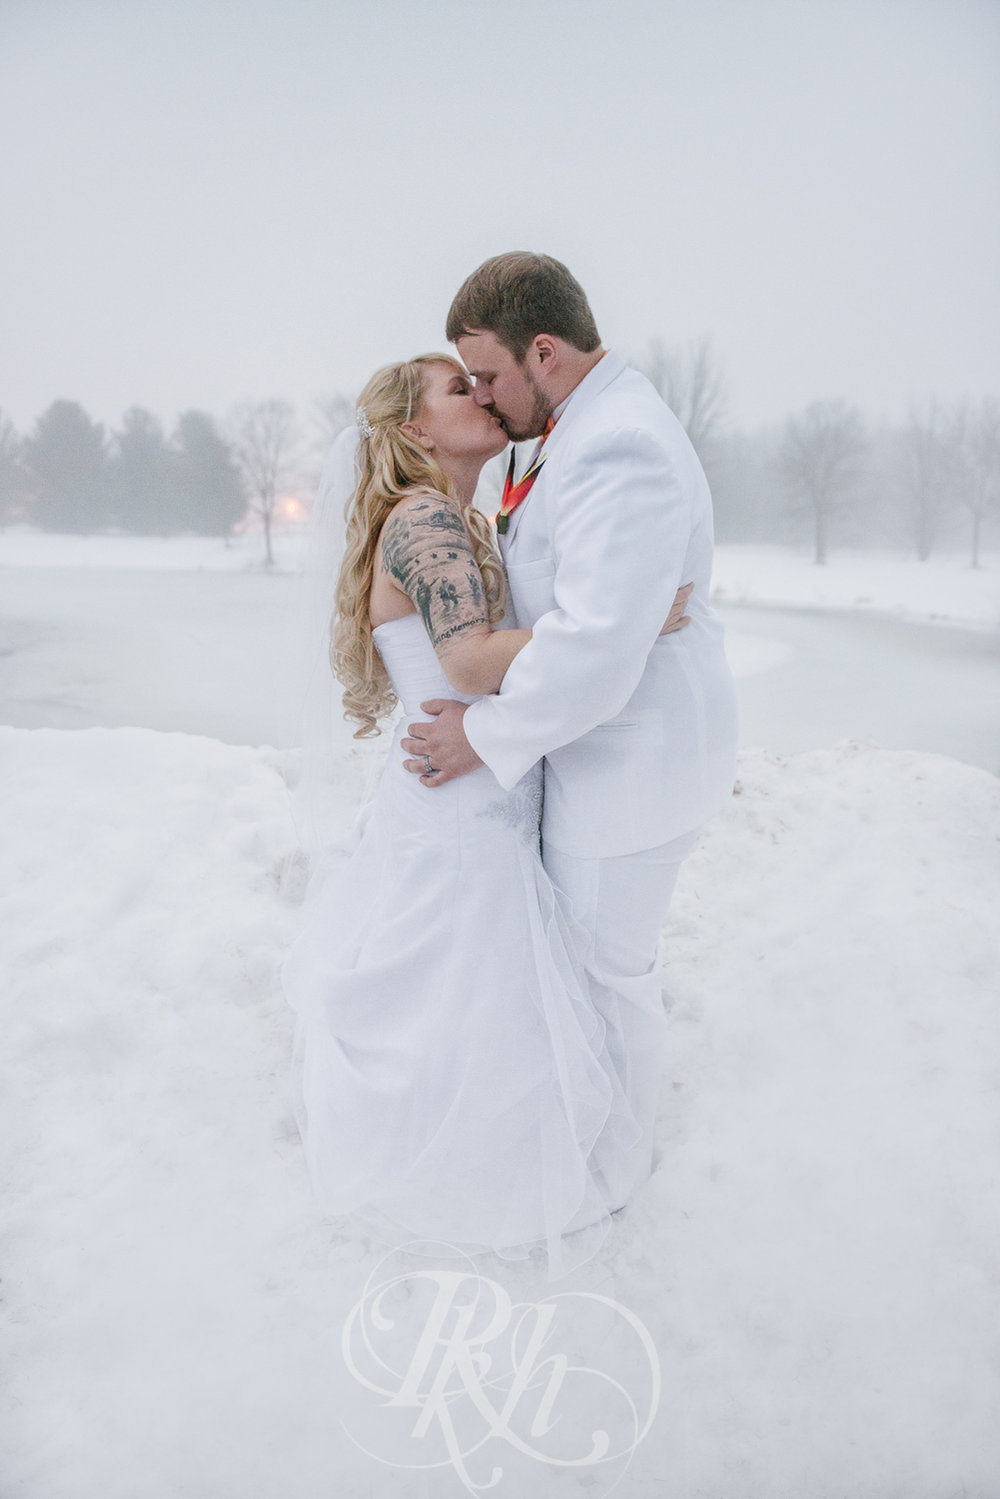 Krystal & Josh - Wisconsin Winter Wedding  Photography - RKH Images -24.jpg